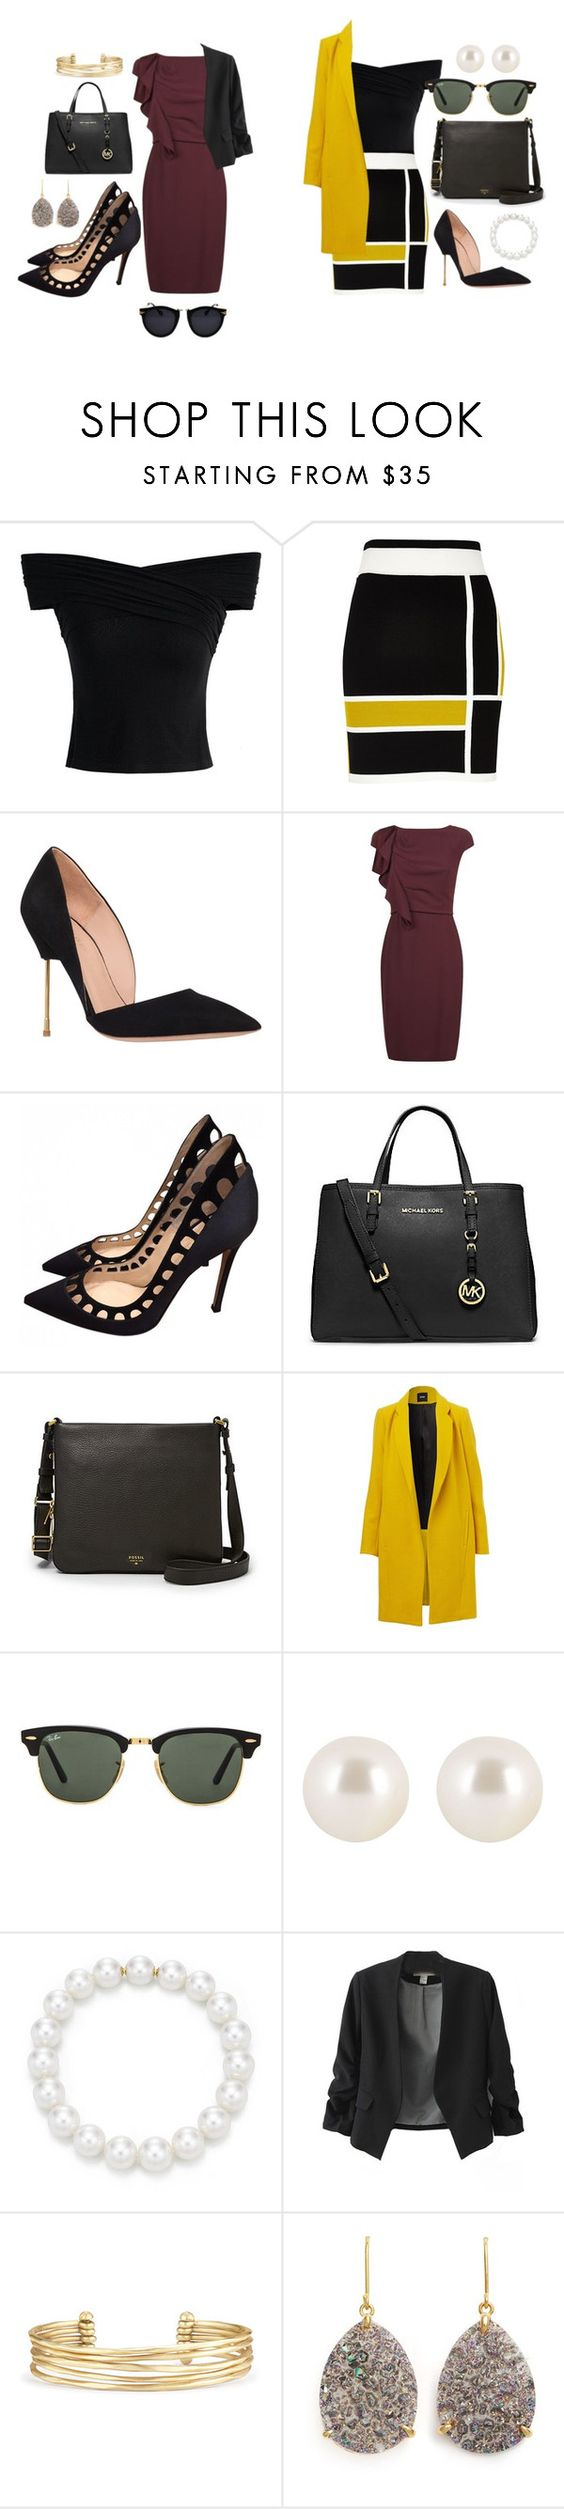 """""""Unbenannt #1590"""" by strawberryfelton ❤ liked on Polyvore featuring Chicwish, River Island, Kurt Geiger, MaxMara, Gianvito Rossi, Michael Kors, FOSSIL, Ray-Ban, Henri Bendel and Stella & Dot"""